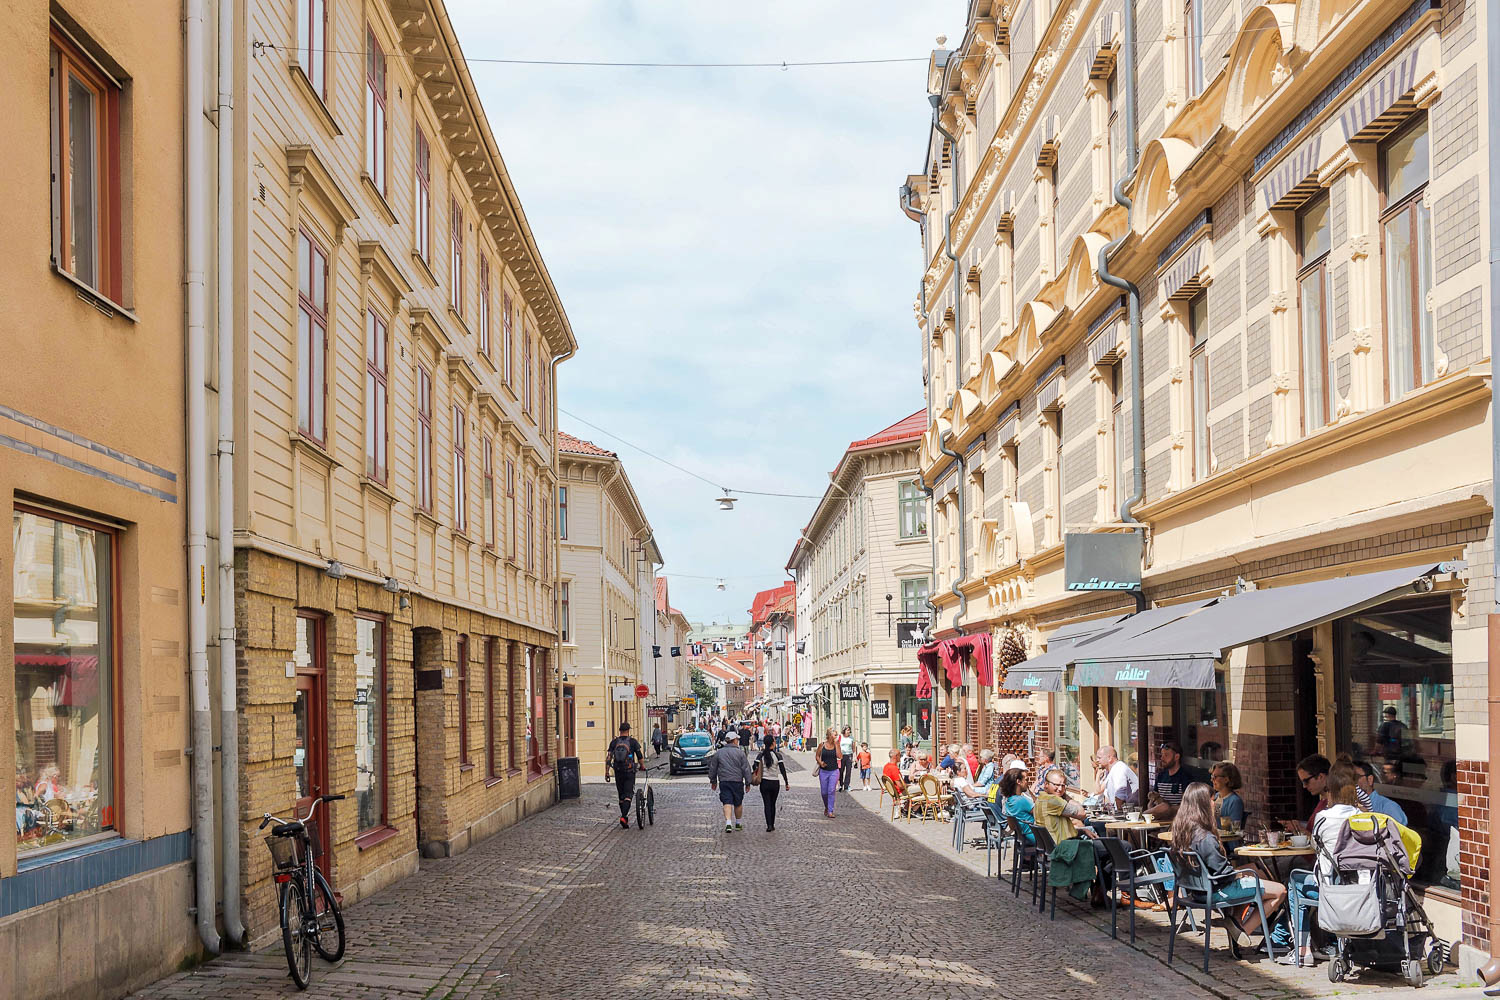 Haga, one of the oldest neighborhoods in Gothenburg, full of beautiful shops, cafes, and cobblestone streets making it a great place to explore